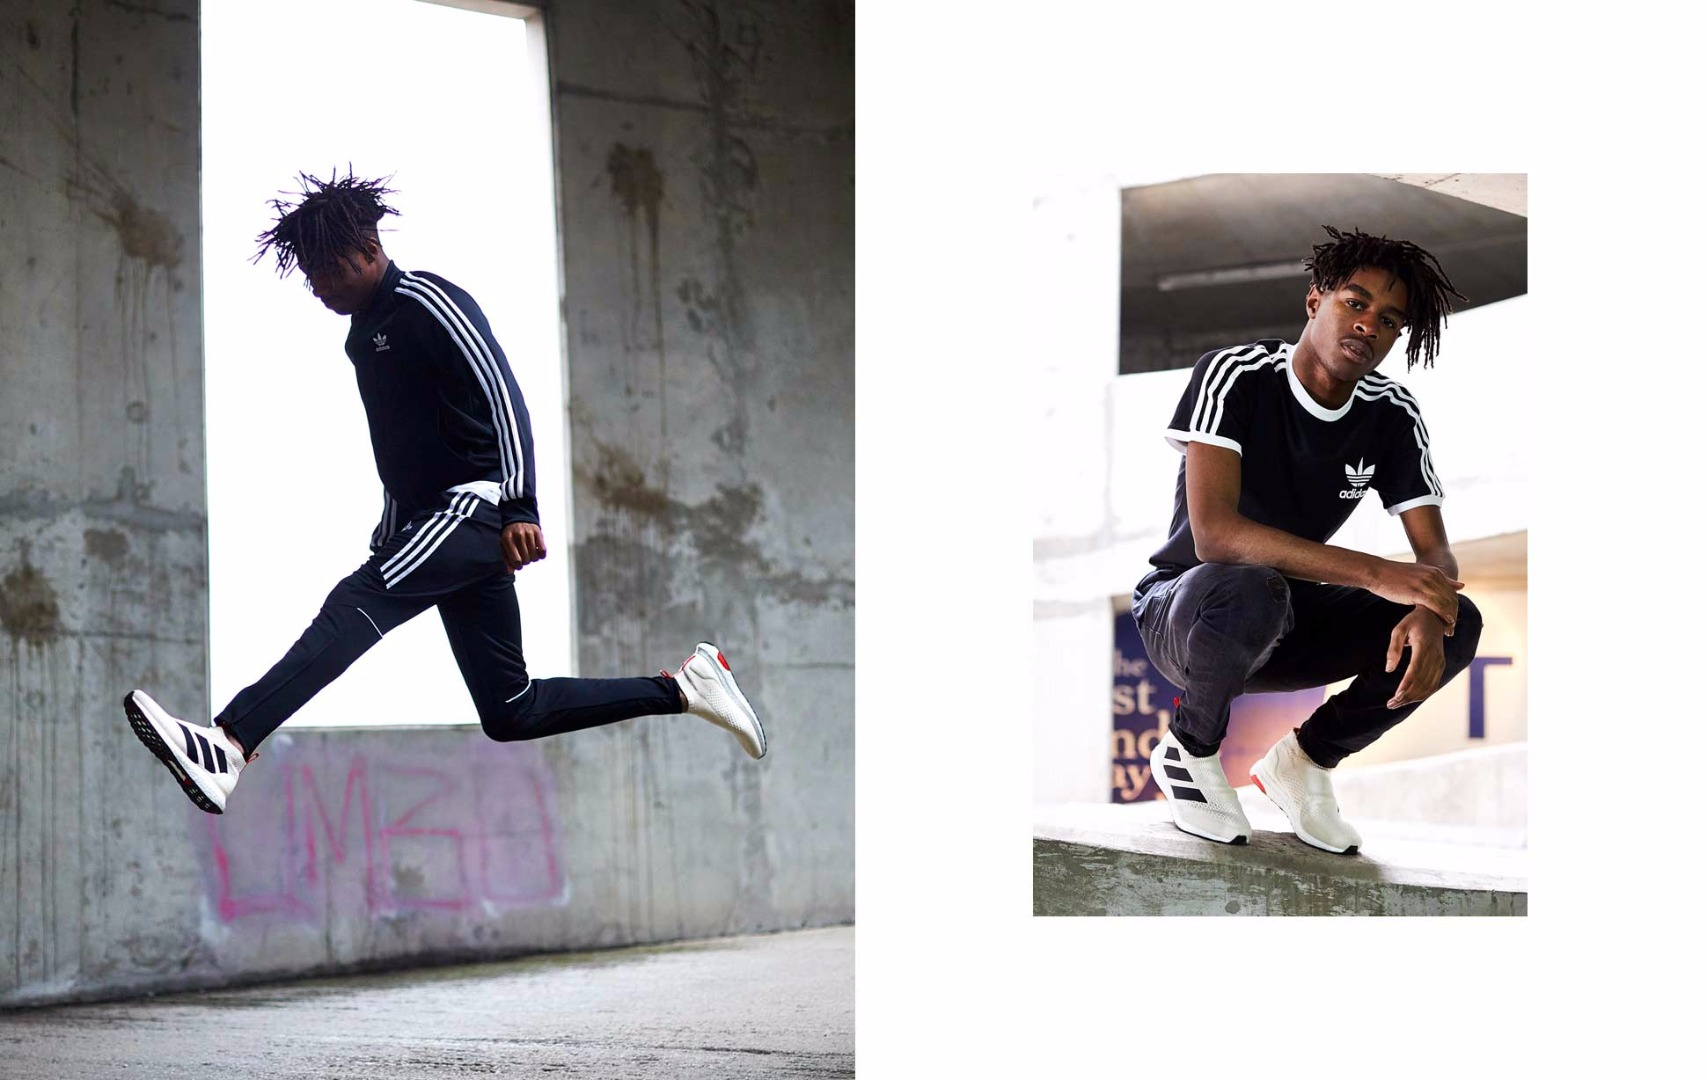 adidas ACE 16+ UltraBOOST Champagne Shoes SoccerBible